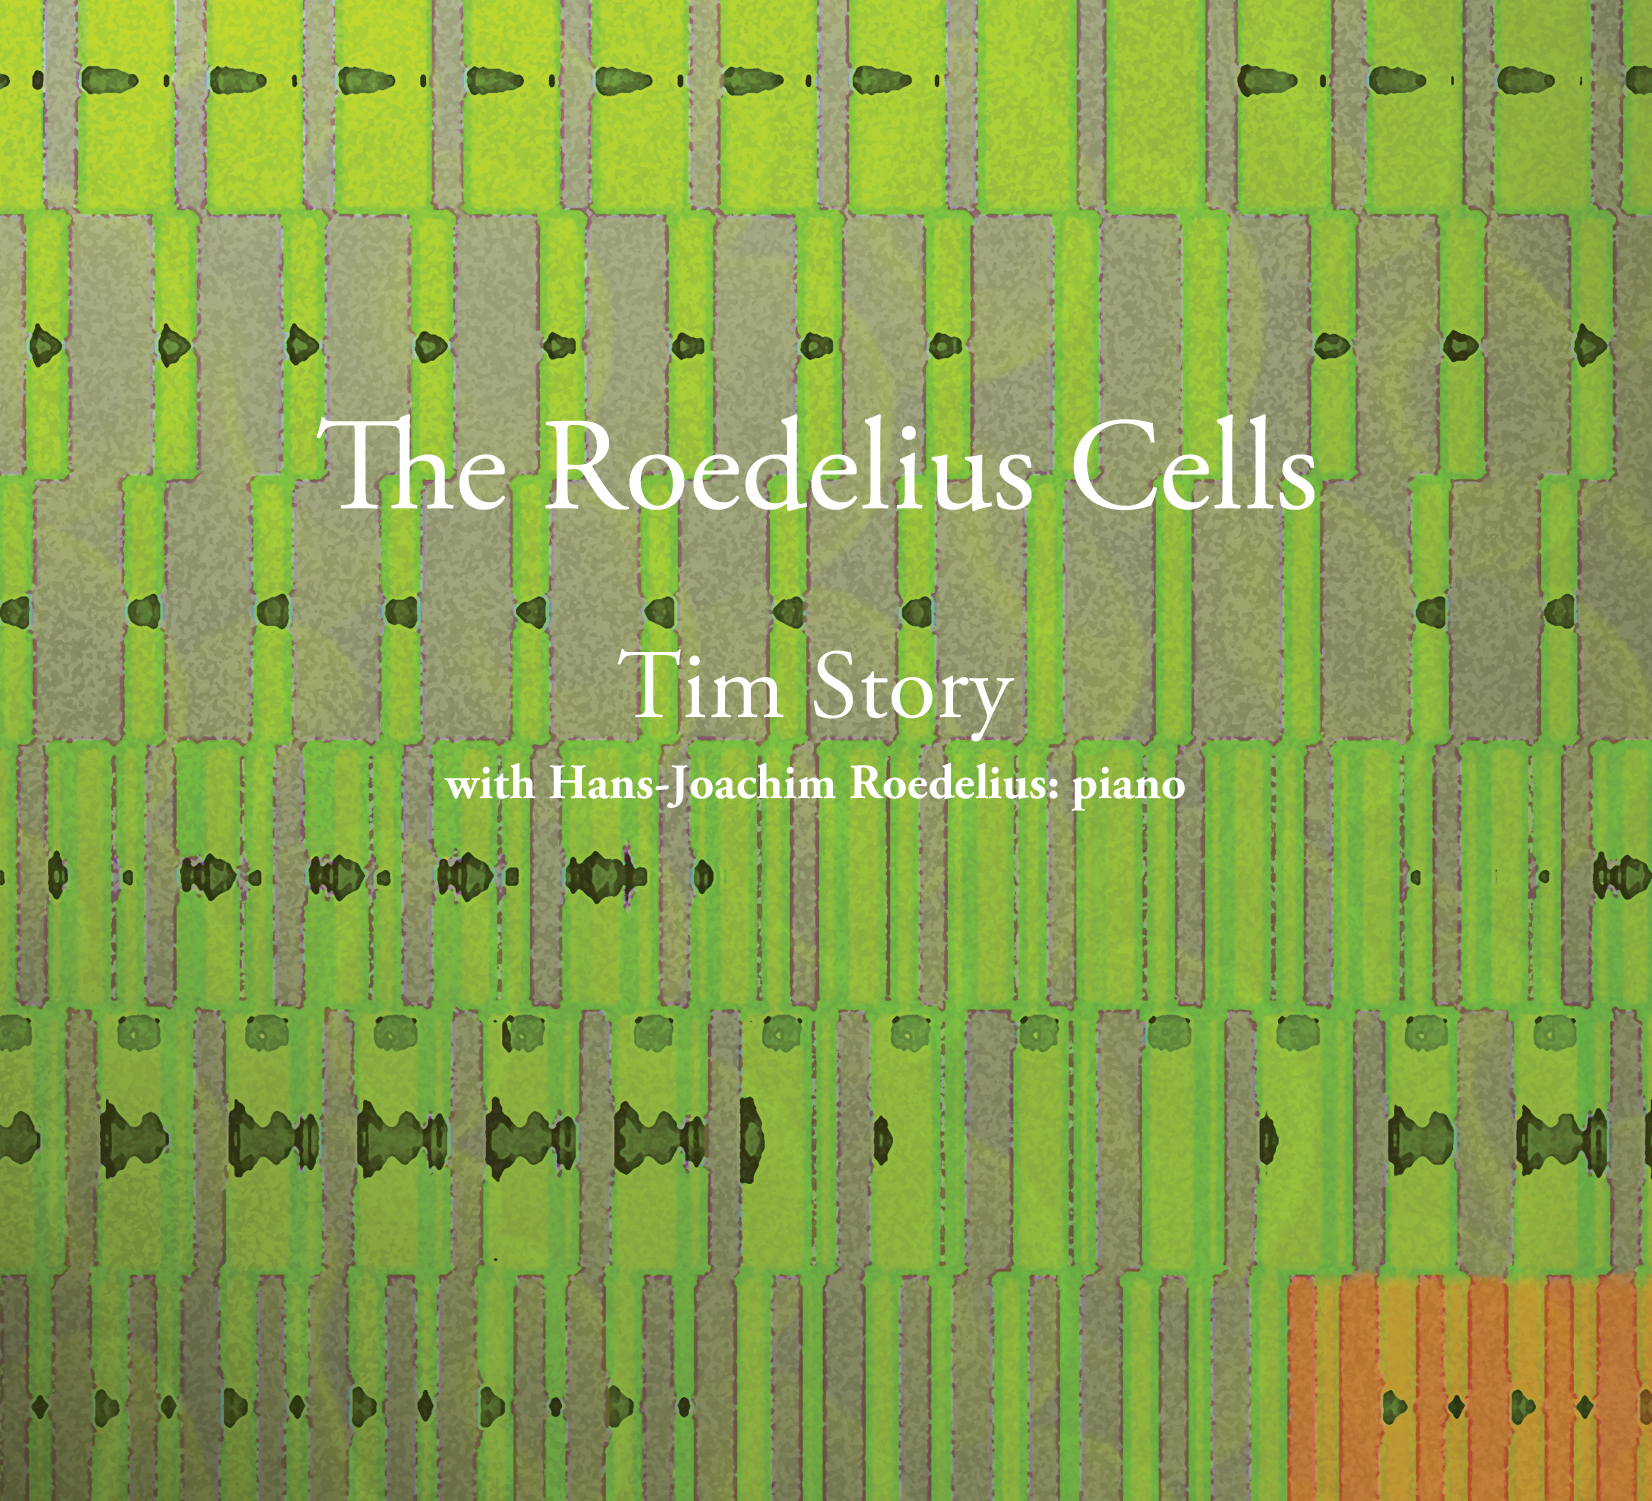 Cover of  The Roedelius Cells  limited edition CD.